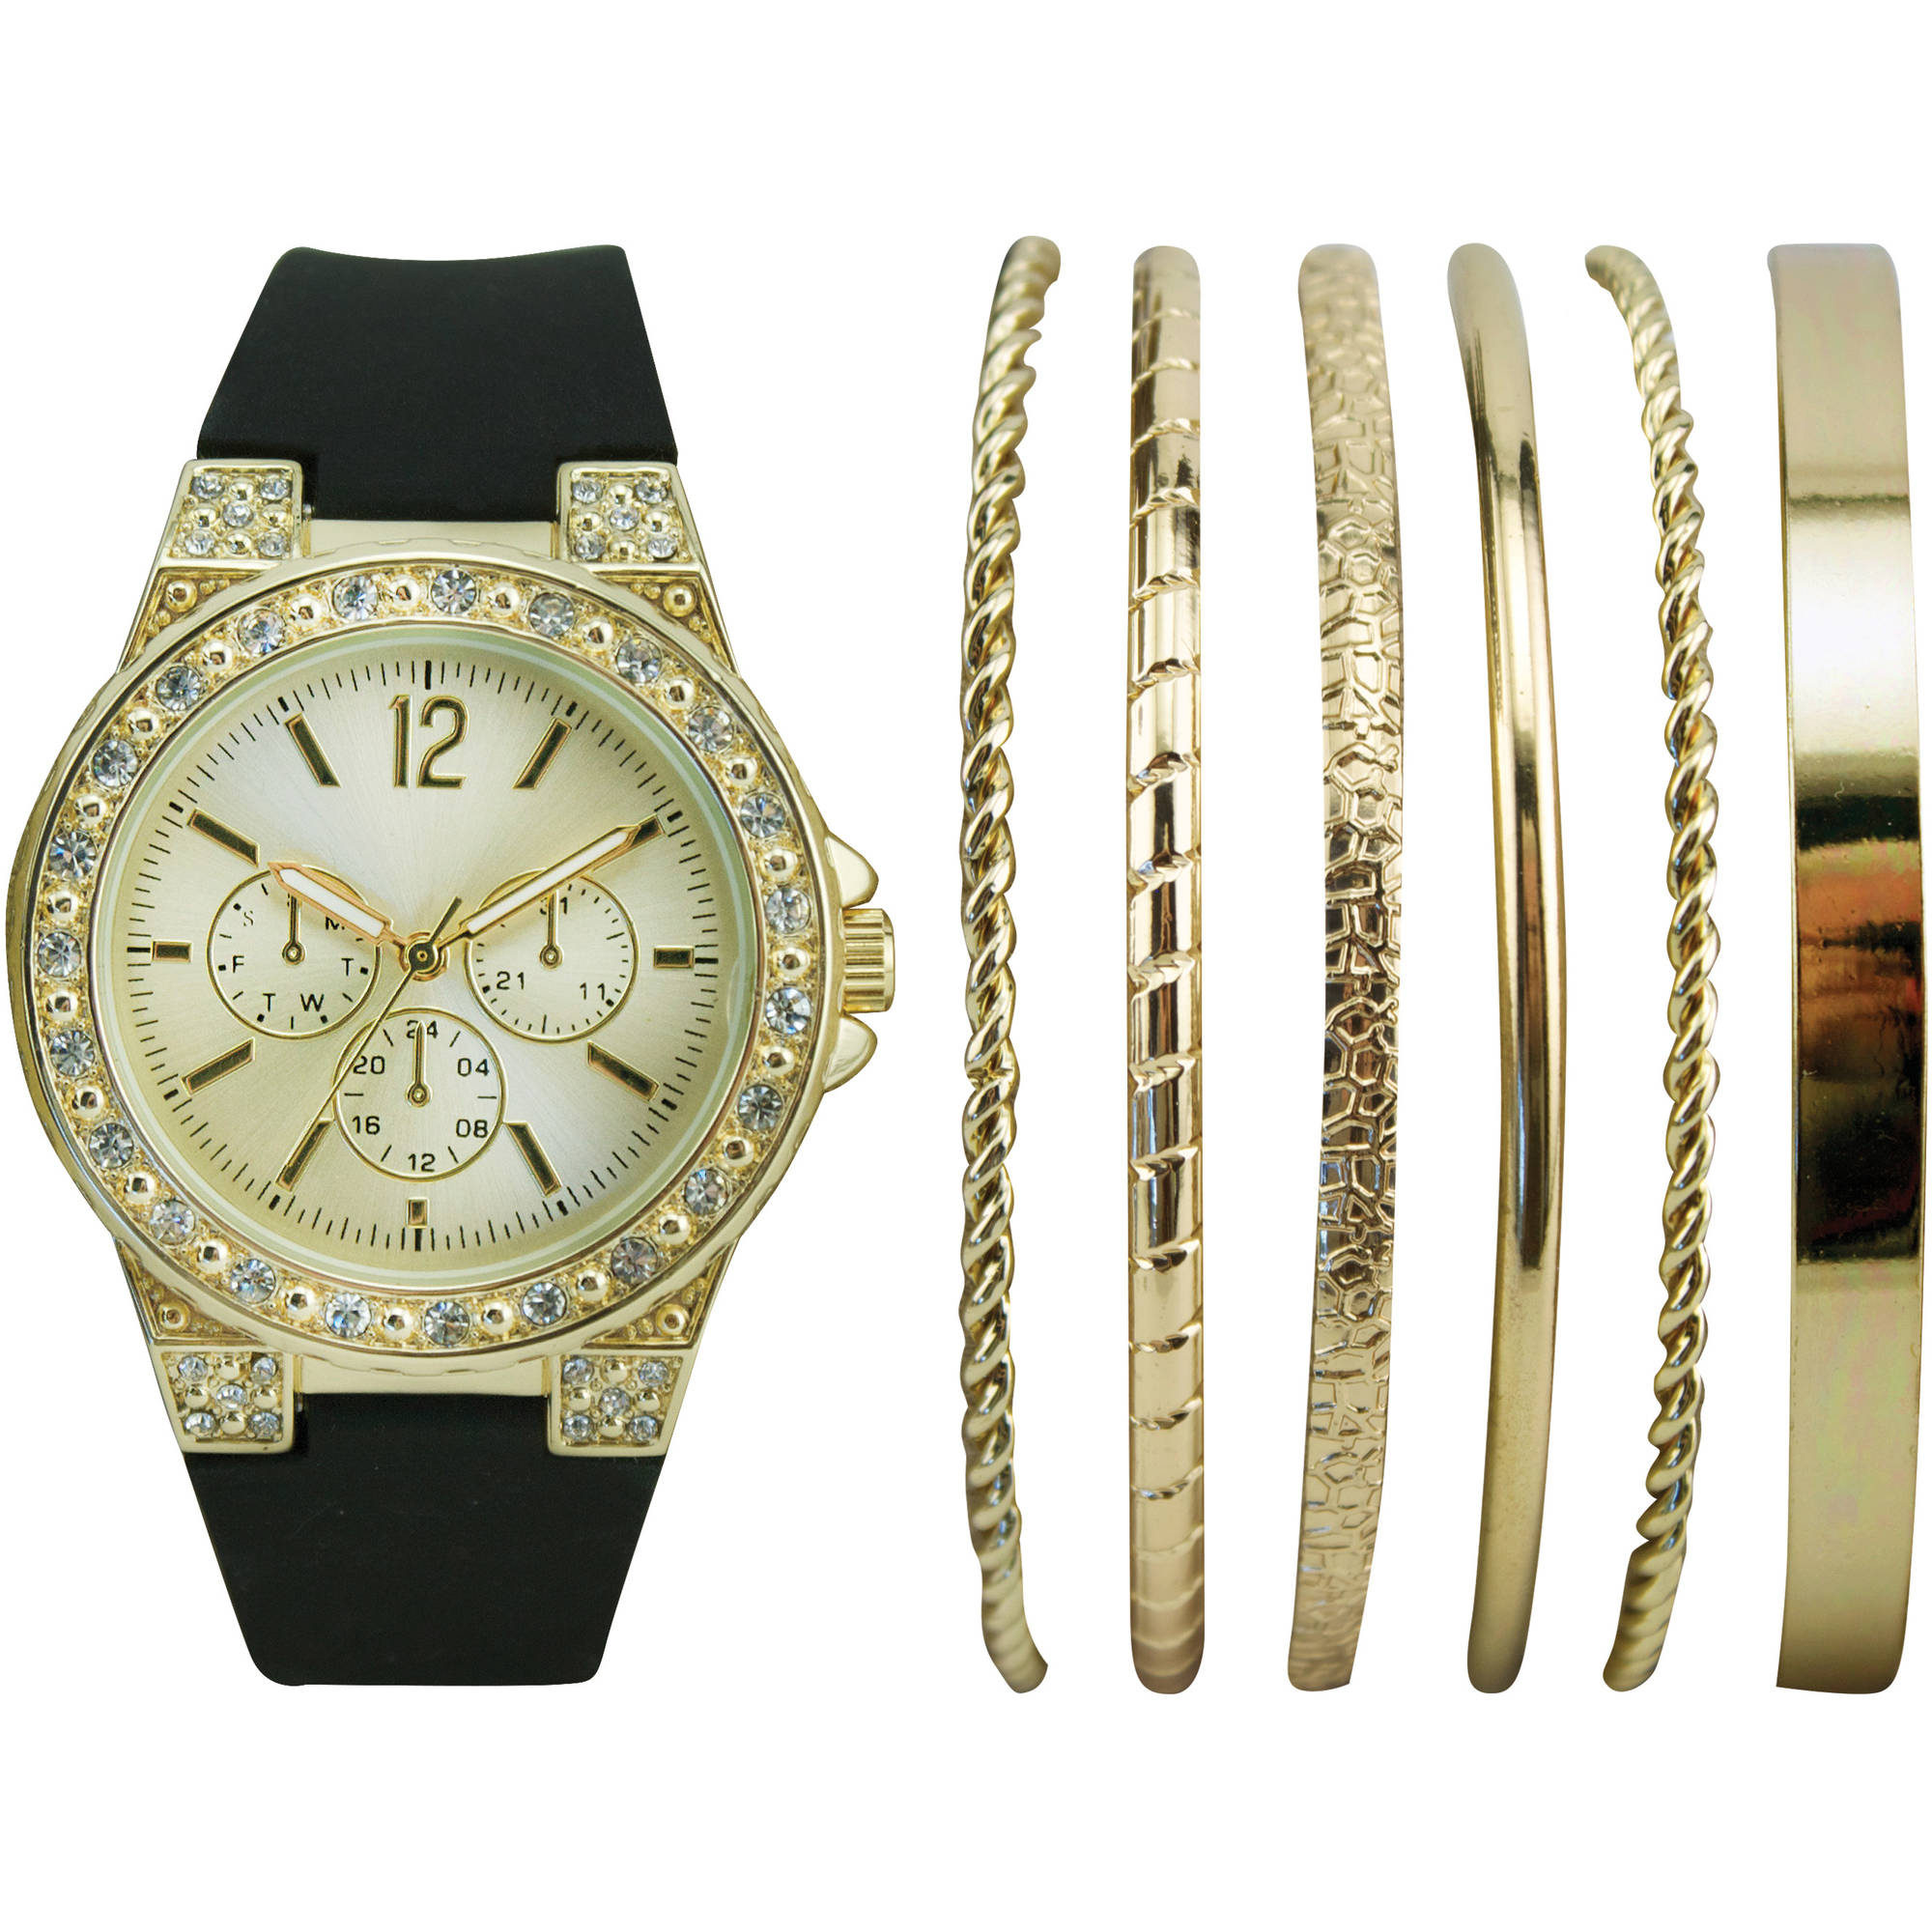 Women's Stackable Gold Watch Set with 6 Assorted Bracelets